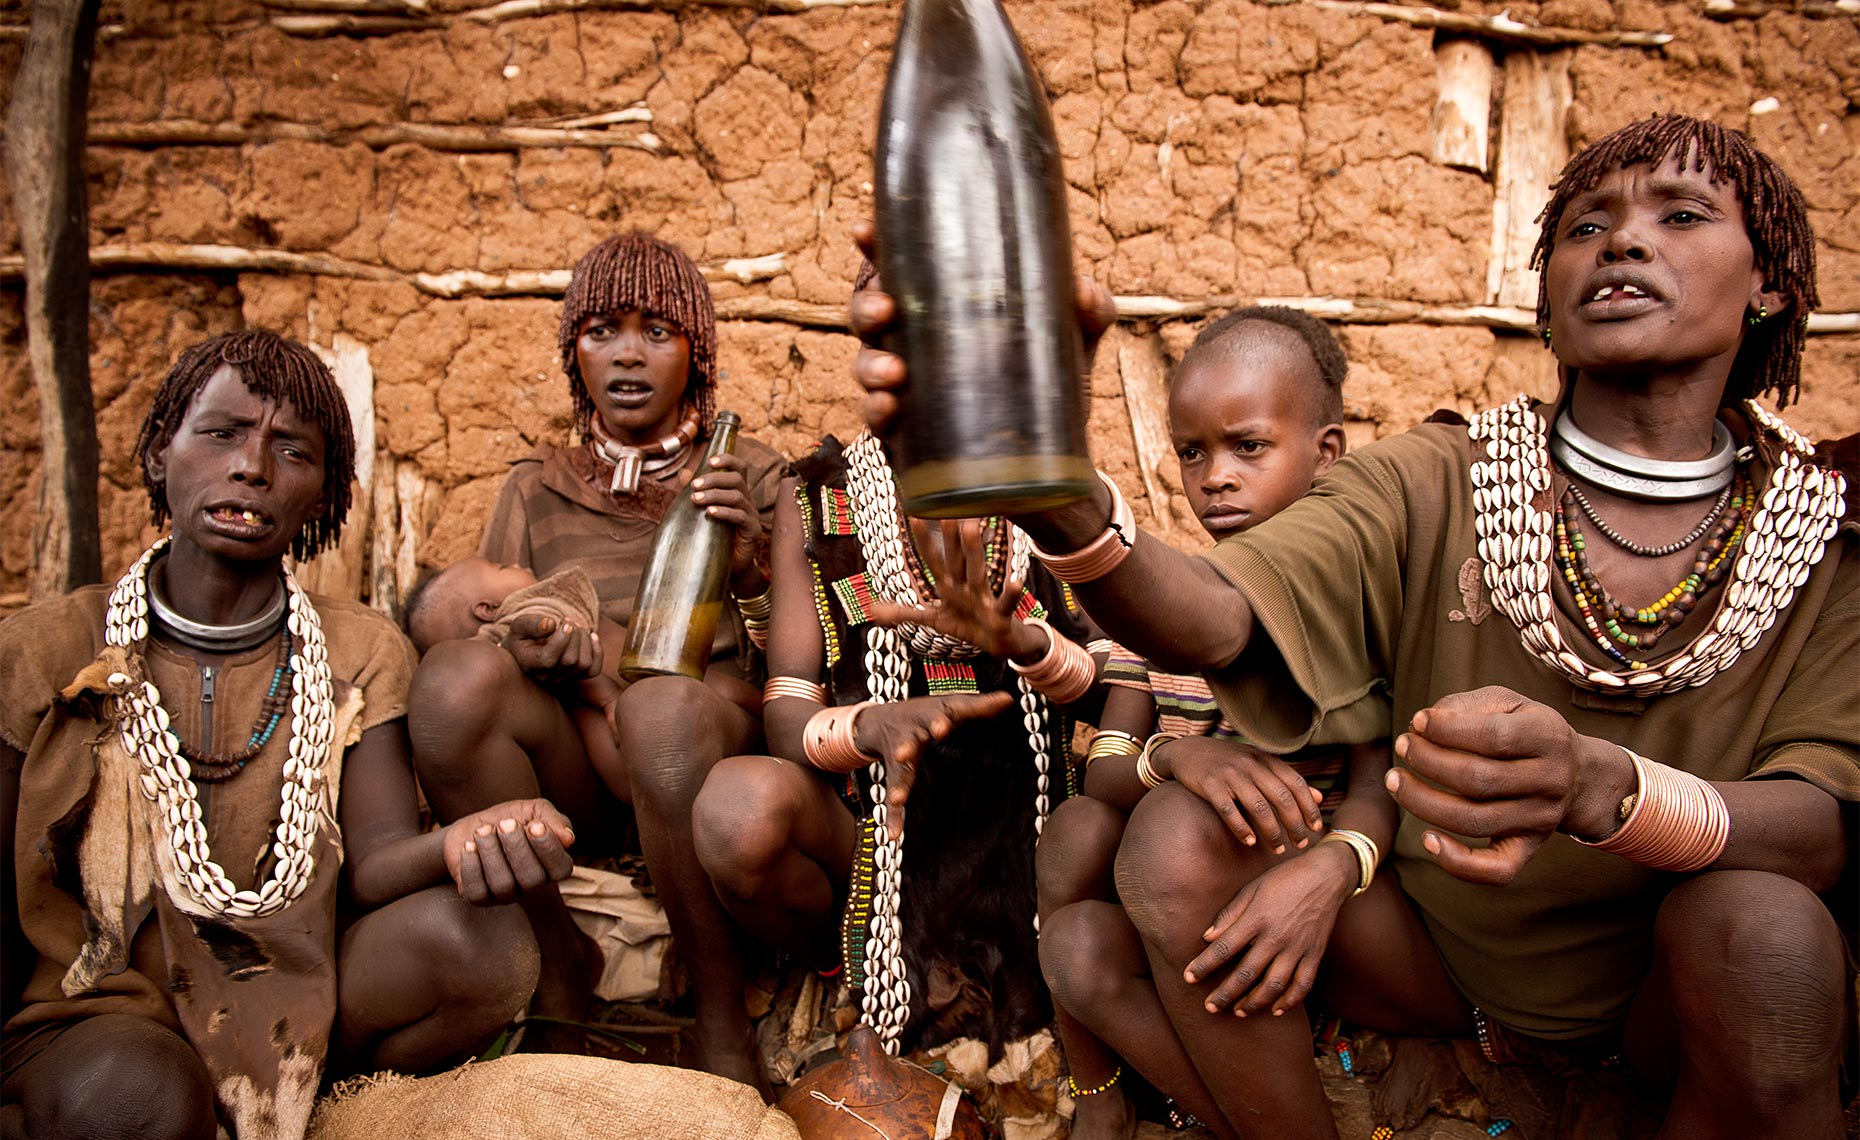 hammer tribe girls drinking beer at the local bar at dimeka market, omo valley ethiopia